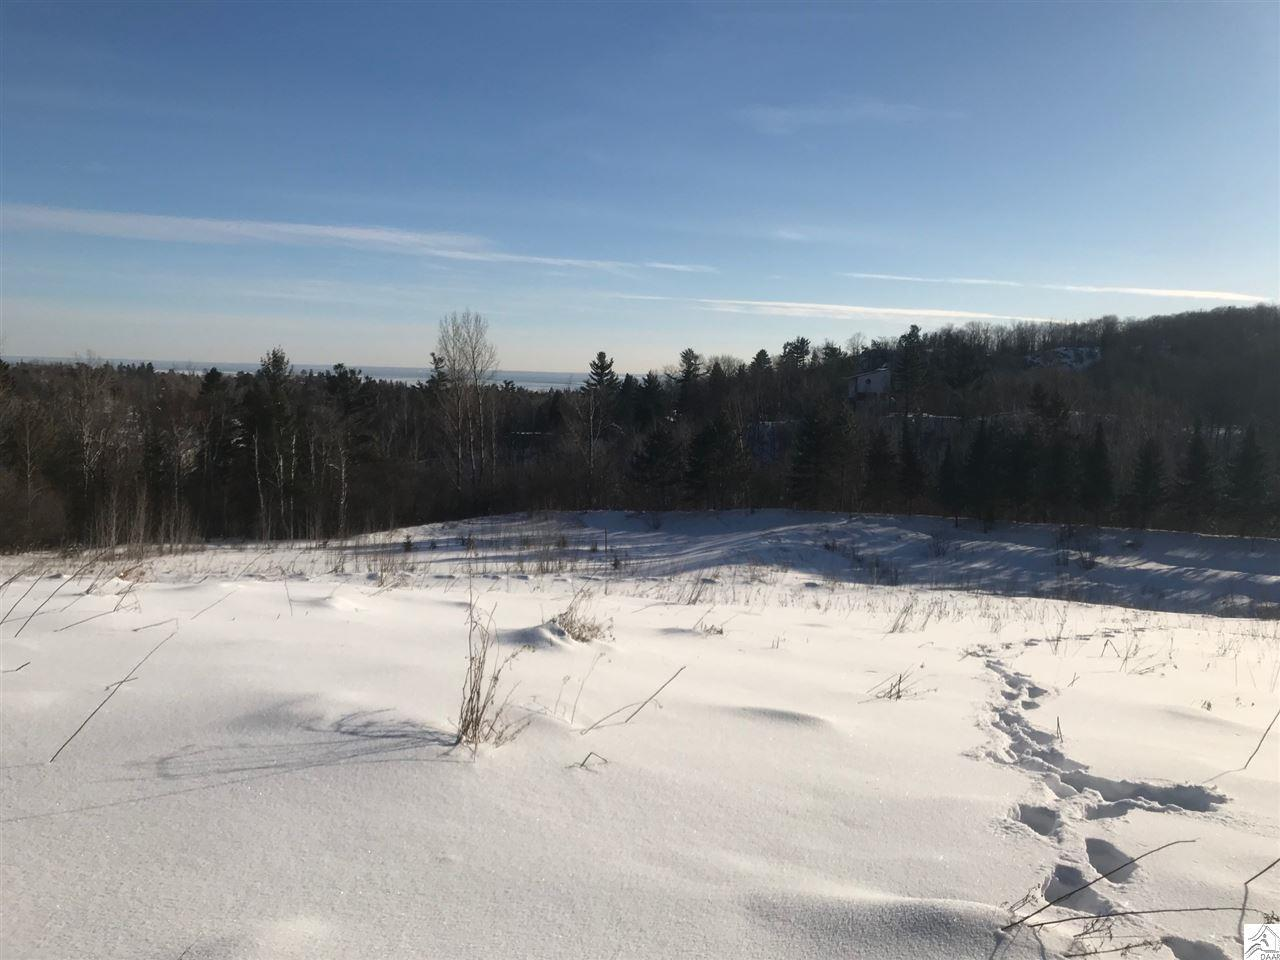 Green Visions: exciting plans for Hartley Nature Center